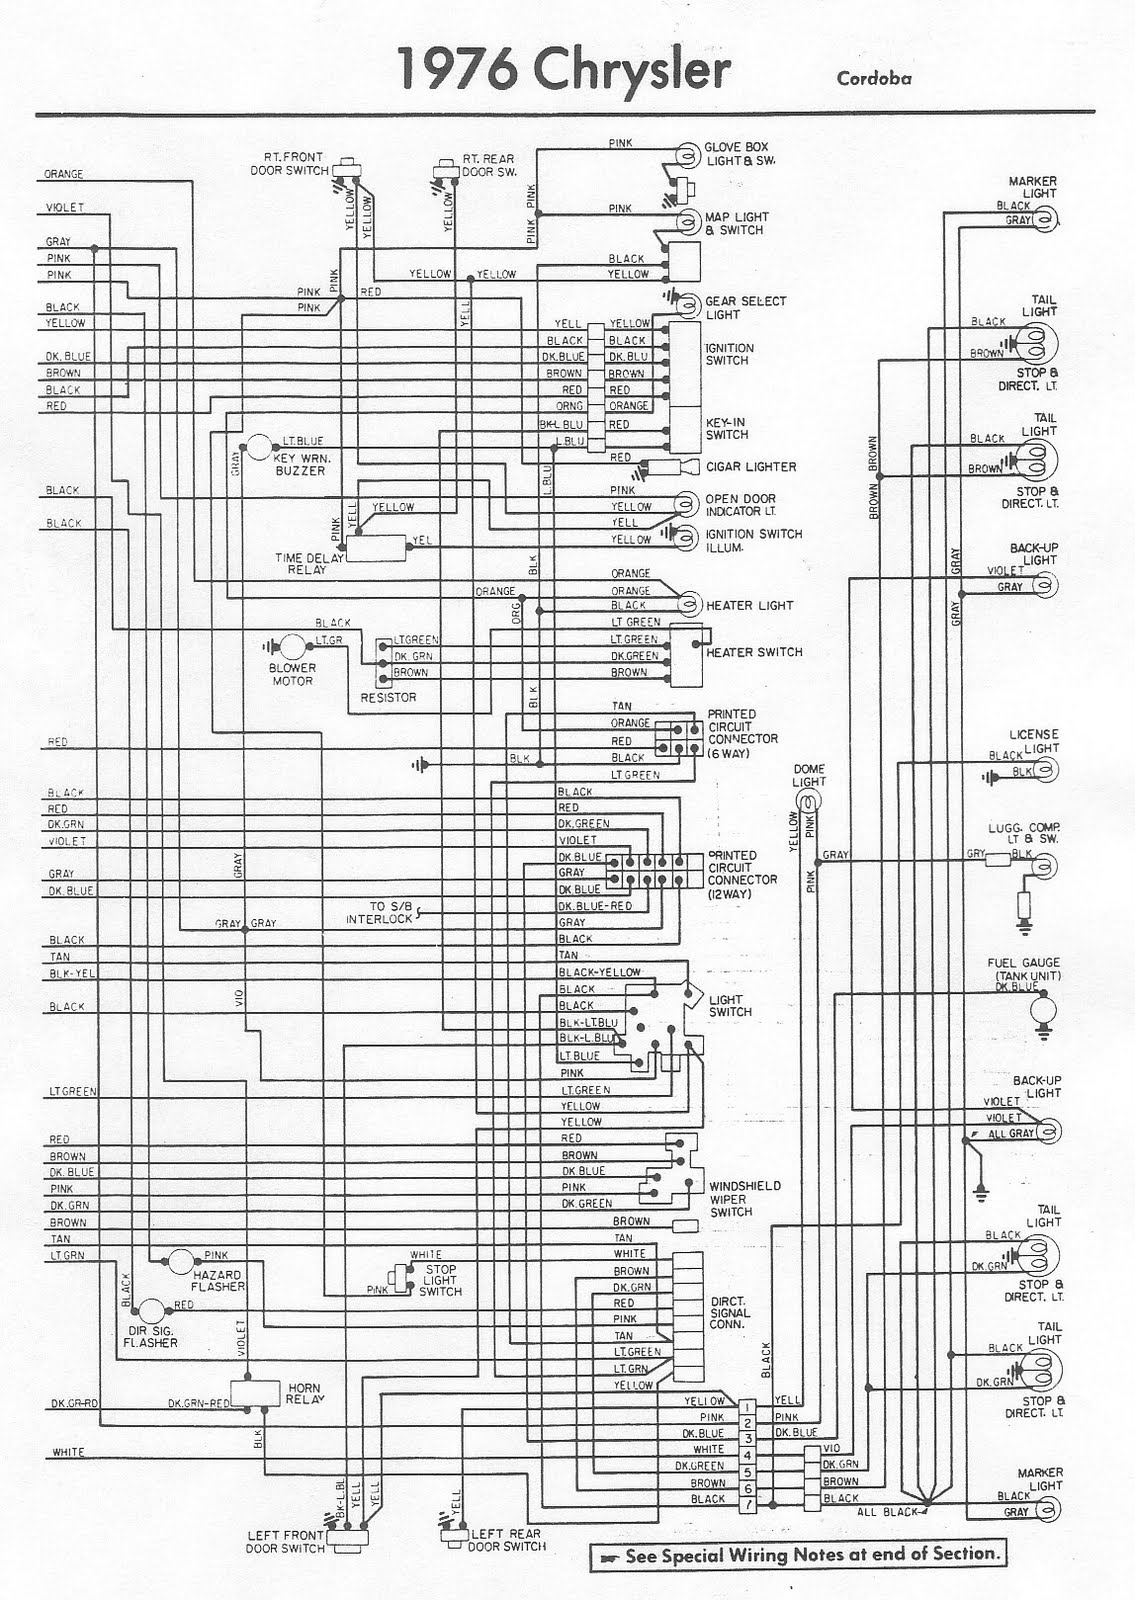 Chrysler Wiring Diagrams Schematics 2001 Suburban Radio Diagram 1965 Ford F100 Ignition Switch Get